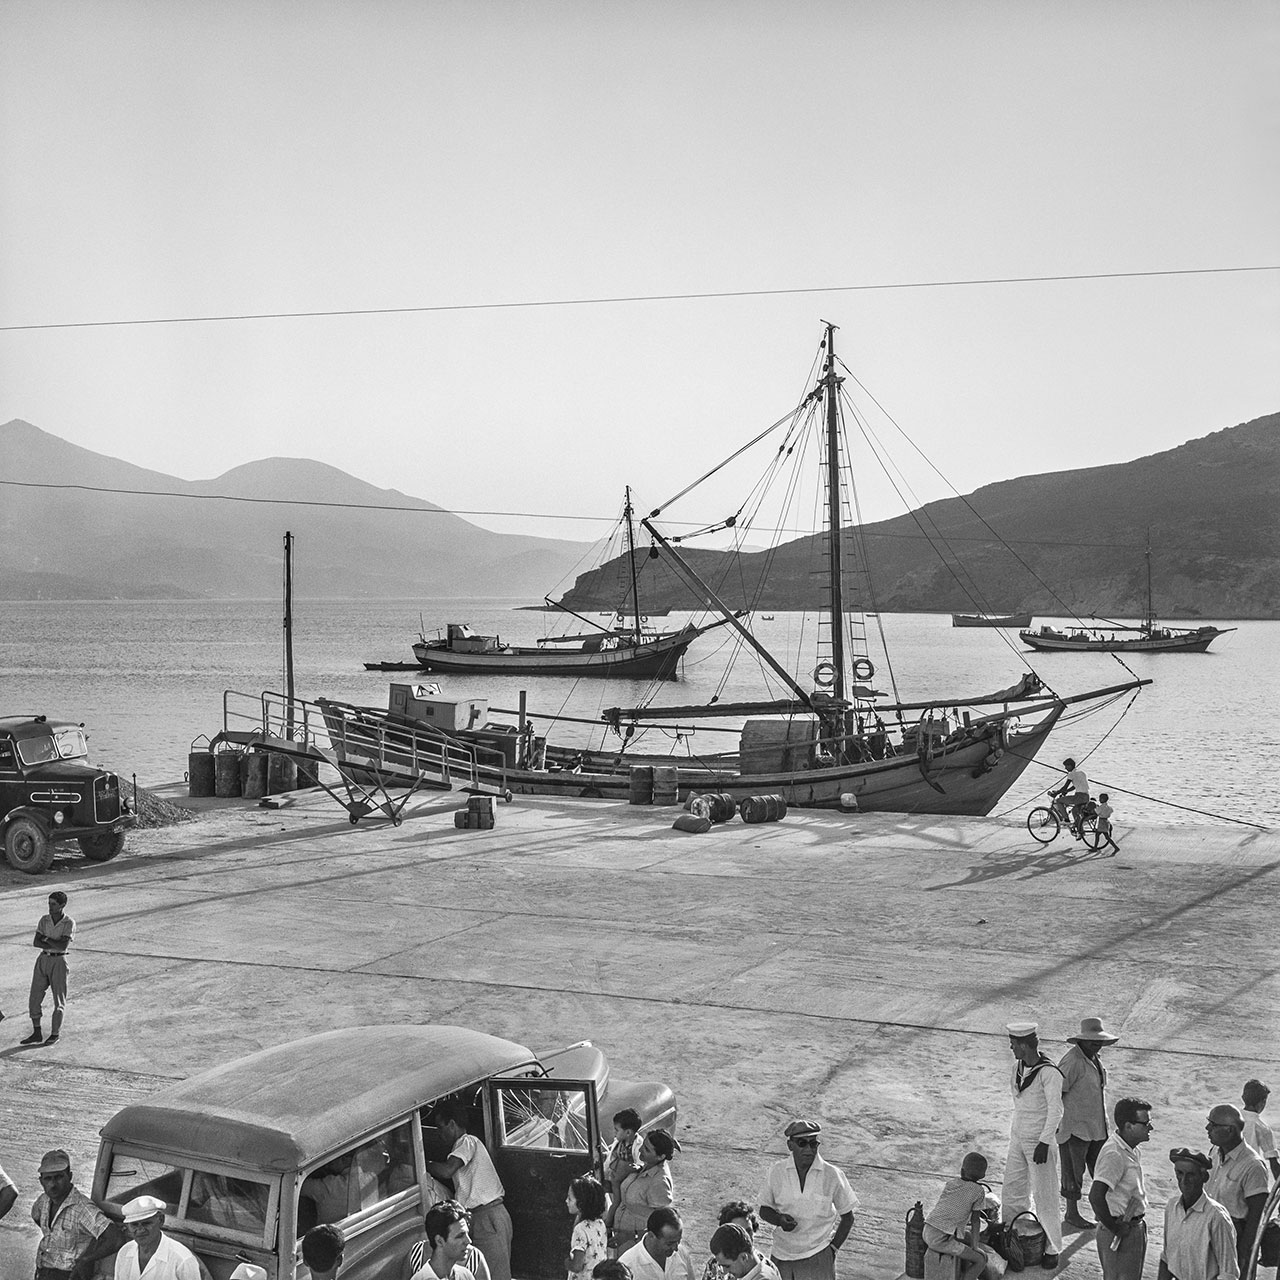 Milos, the Port of Adamas 1961. Photo © Robert McCabe.